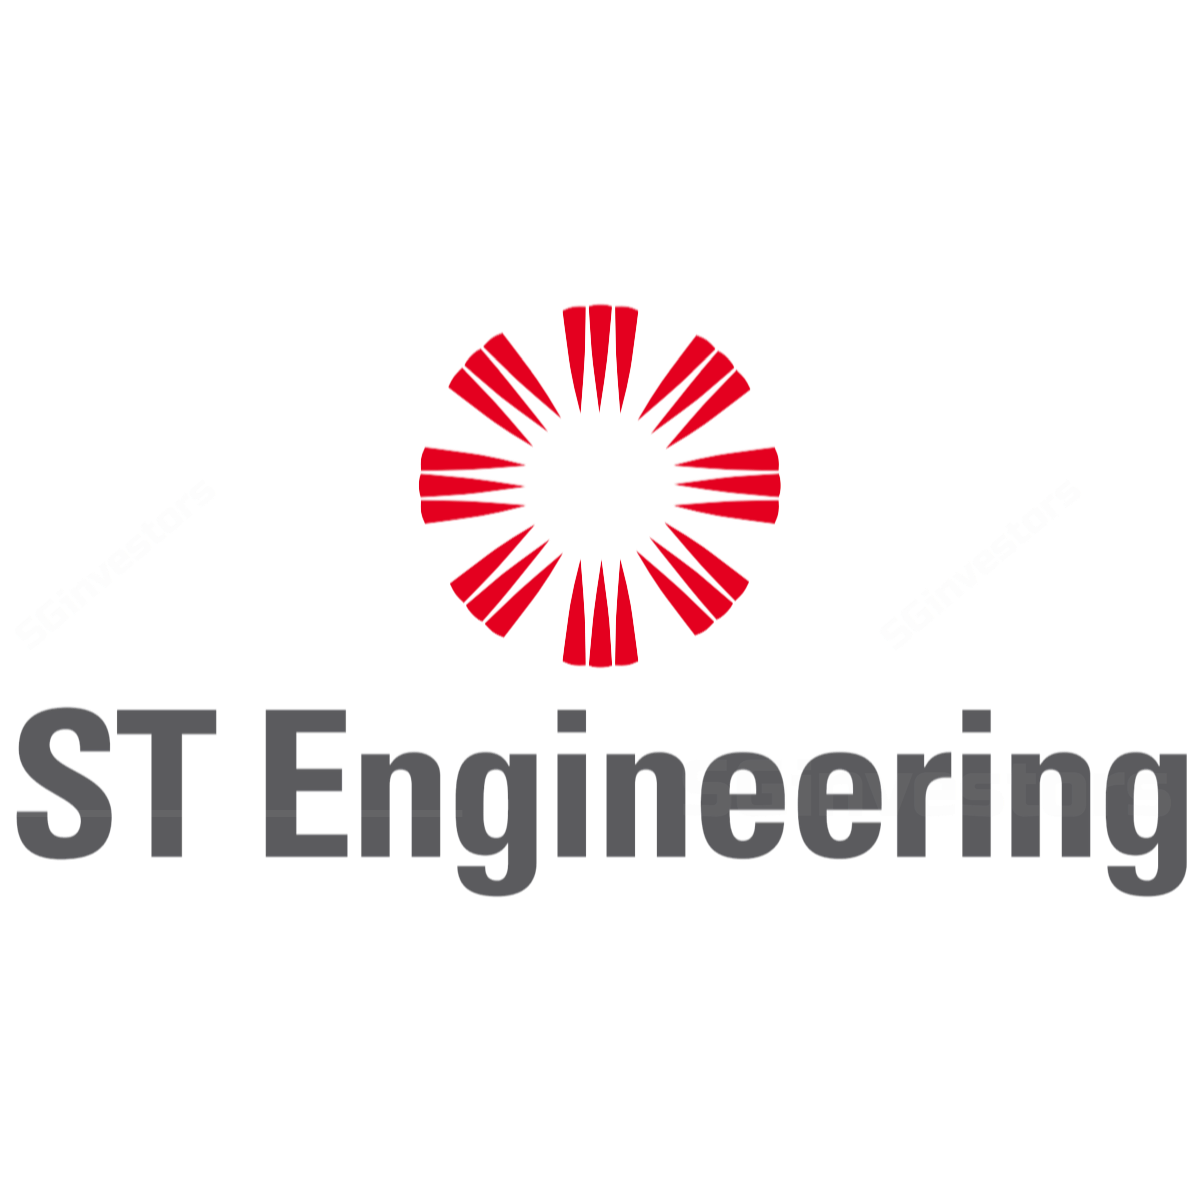 ST Engineering - CIMB Research 2018-03-22: Setting 2022 Targets